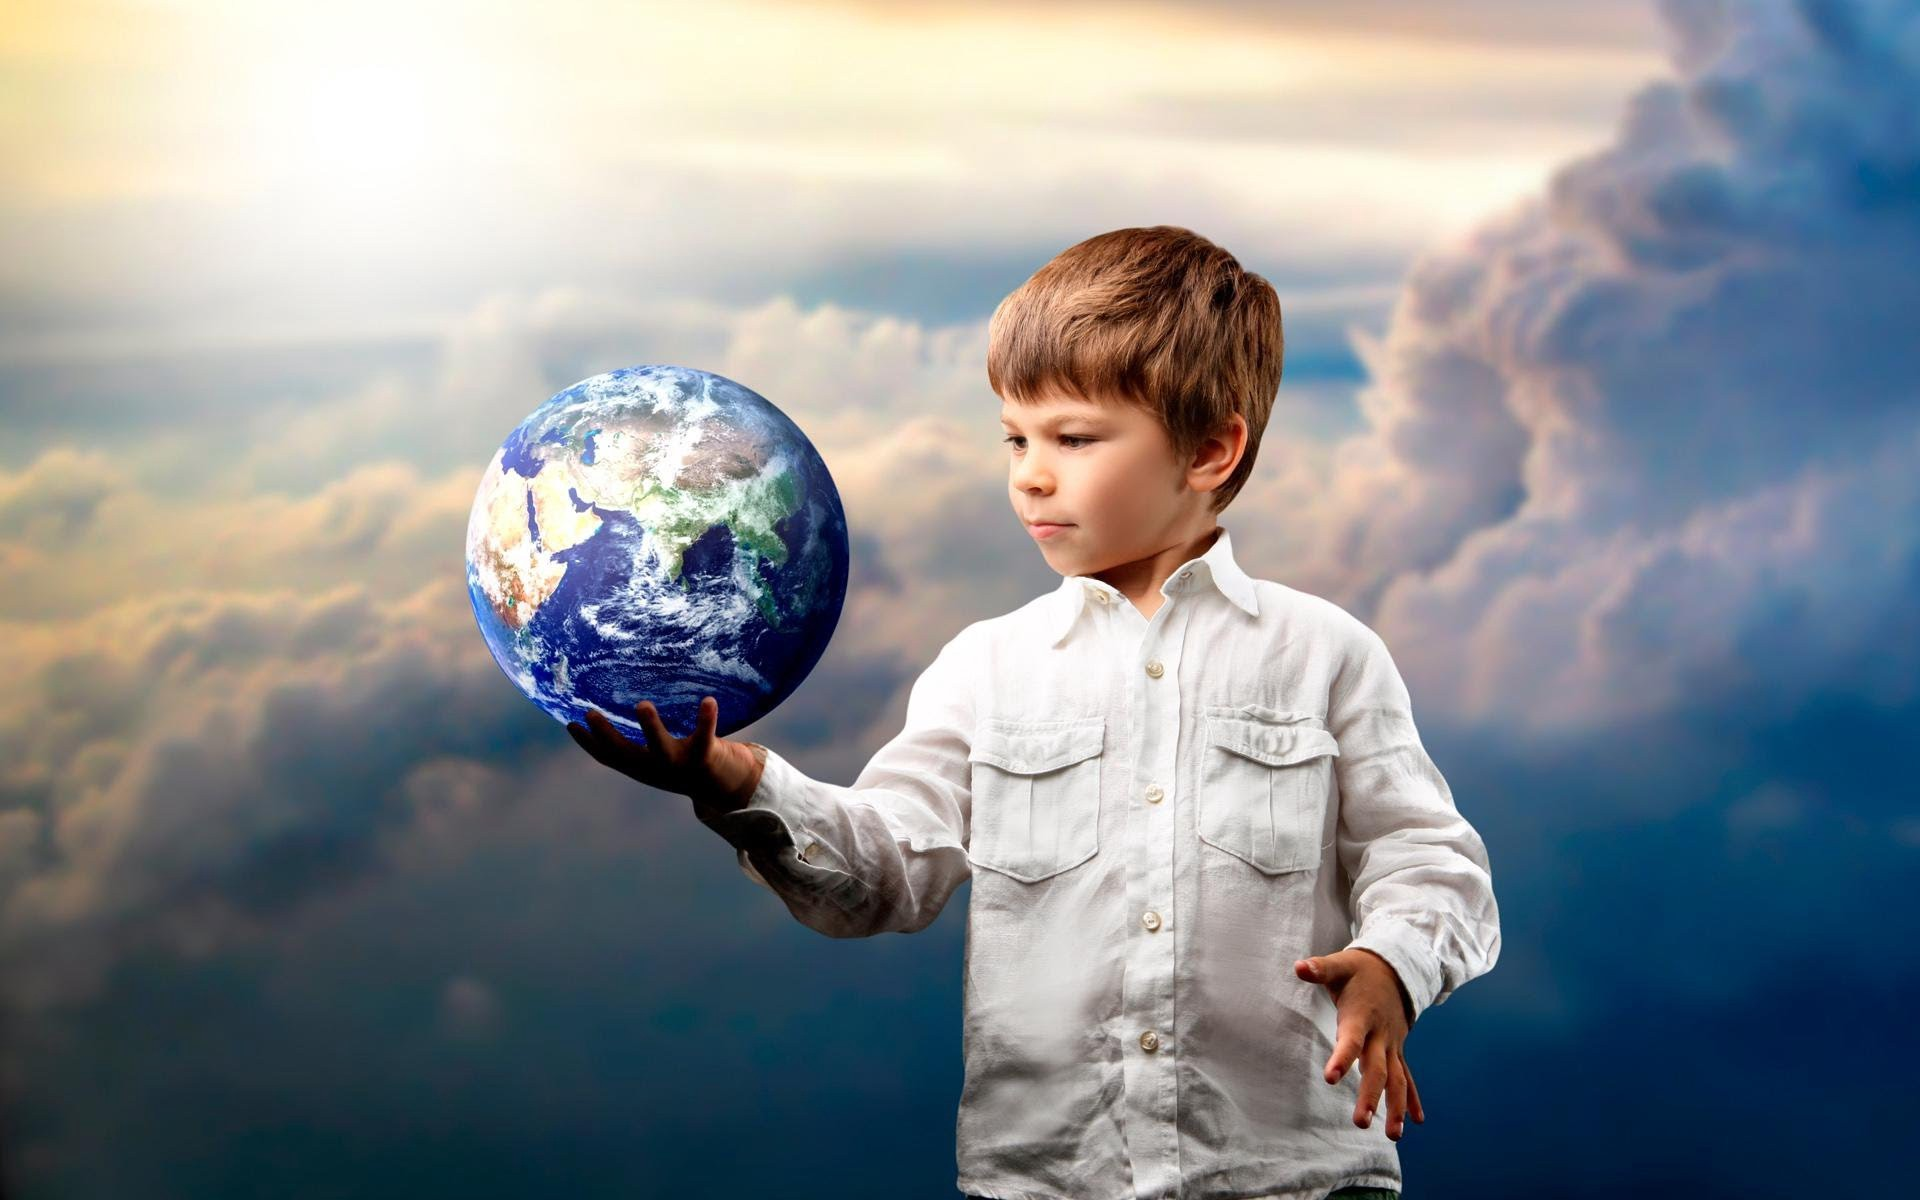 Photography of a kid holding a globe